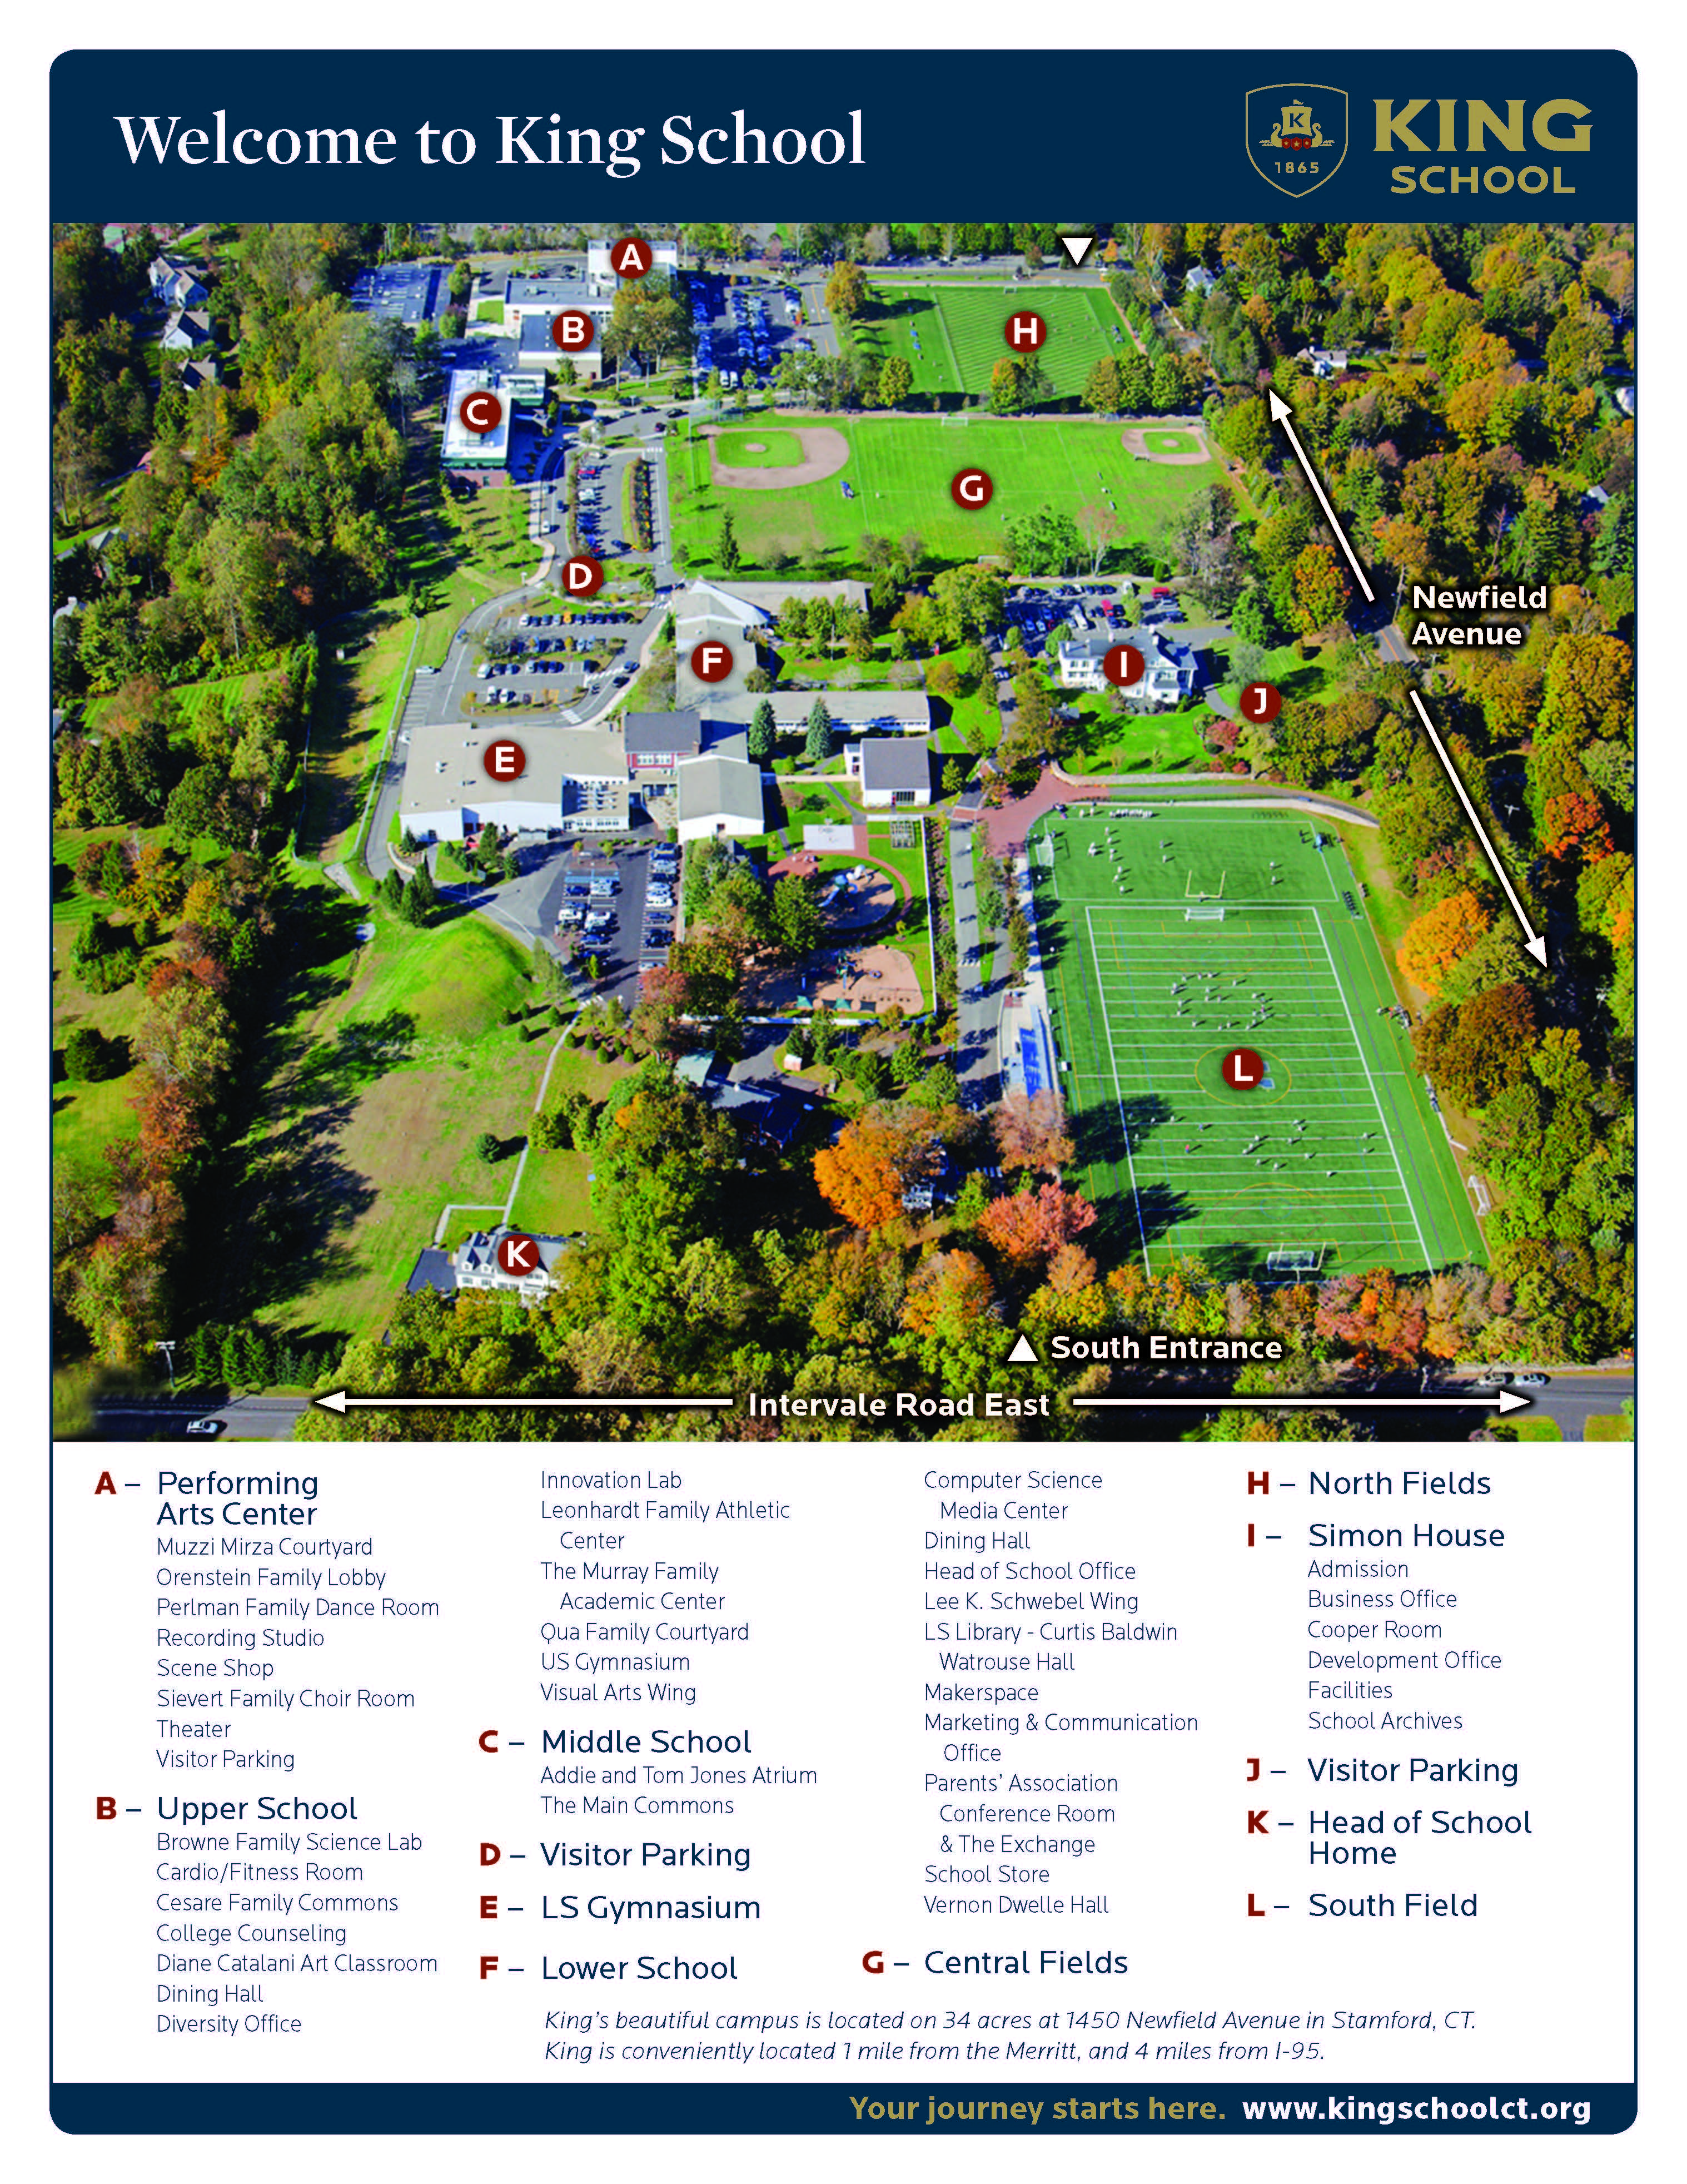 Campus Map & Directions - King on custom map directions, basic map directions, teacher giving directions, google search, maps get directions, route planning software, yahoo! maps, web mapping, bing maps platform, maps used in foe, bing maps, get walking directions, print maps with directions, satellite map images with missing or unclear data, maps north ogden, asheville nc map directions, nokia maps, google latitude, maps live of my house, easy road map directions, driving directions, cardinal directions, mapquest directions, maps google maps, maps distances ohio-indiana, google earth, maps puerto rico drivers, maps of seven deadly sins in america, follow directions, google voice, google map maker, maps espanol,